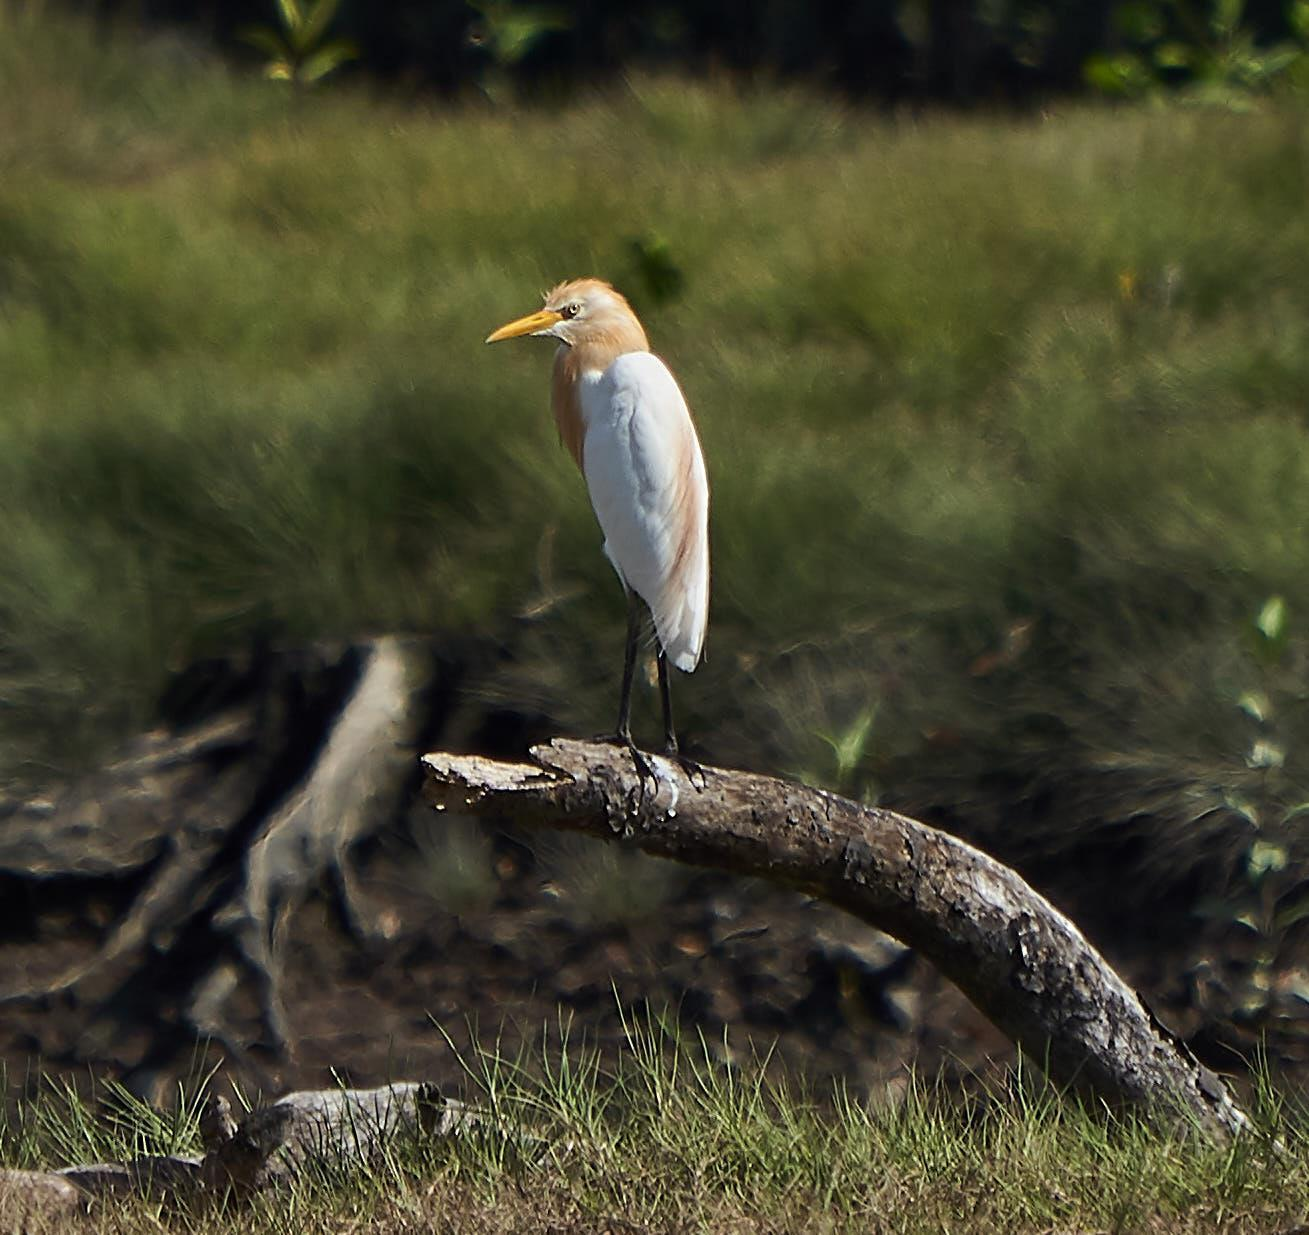 Cattle Egret Photo by Steven Cheong